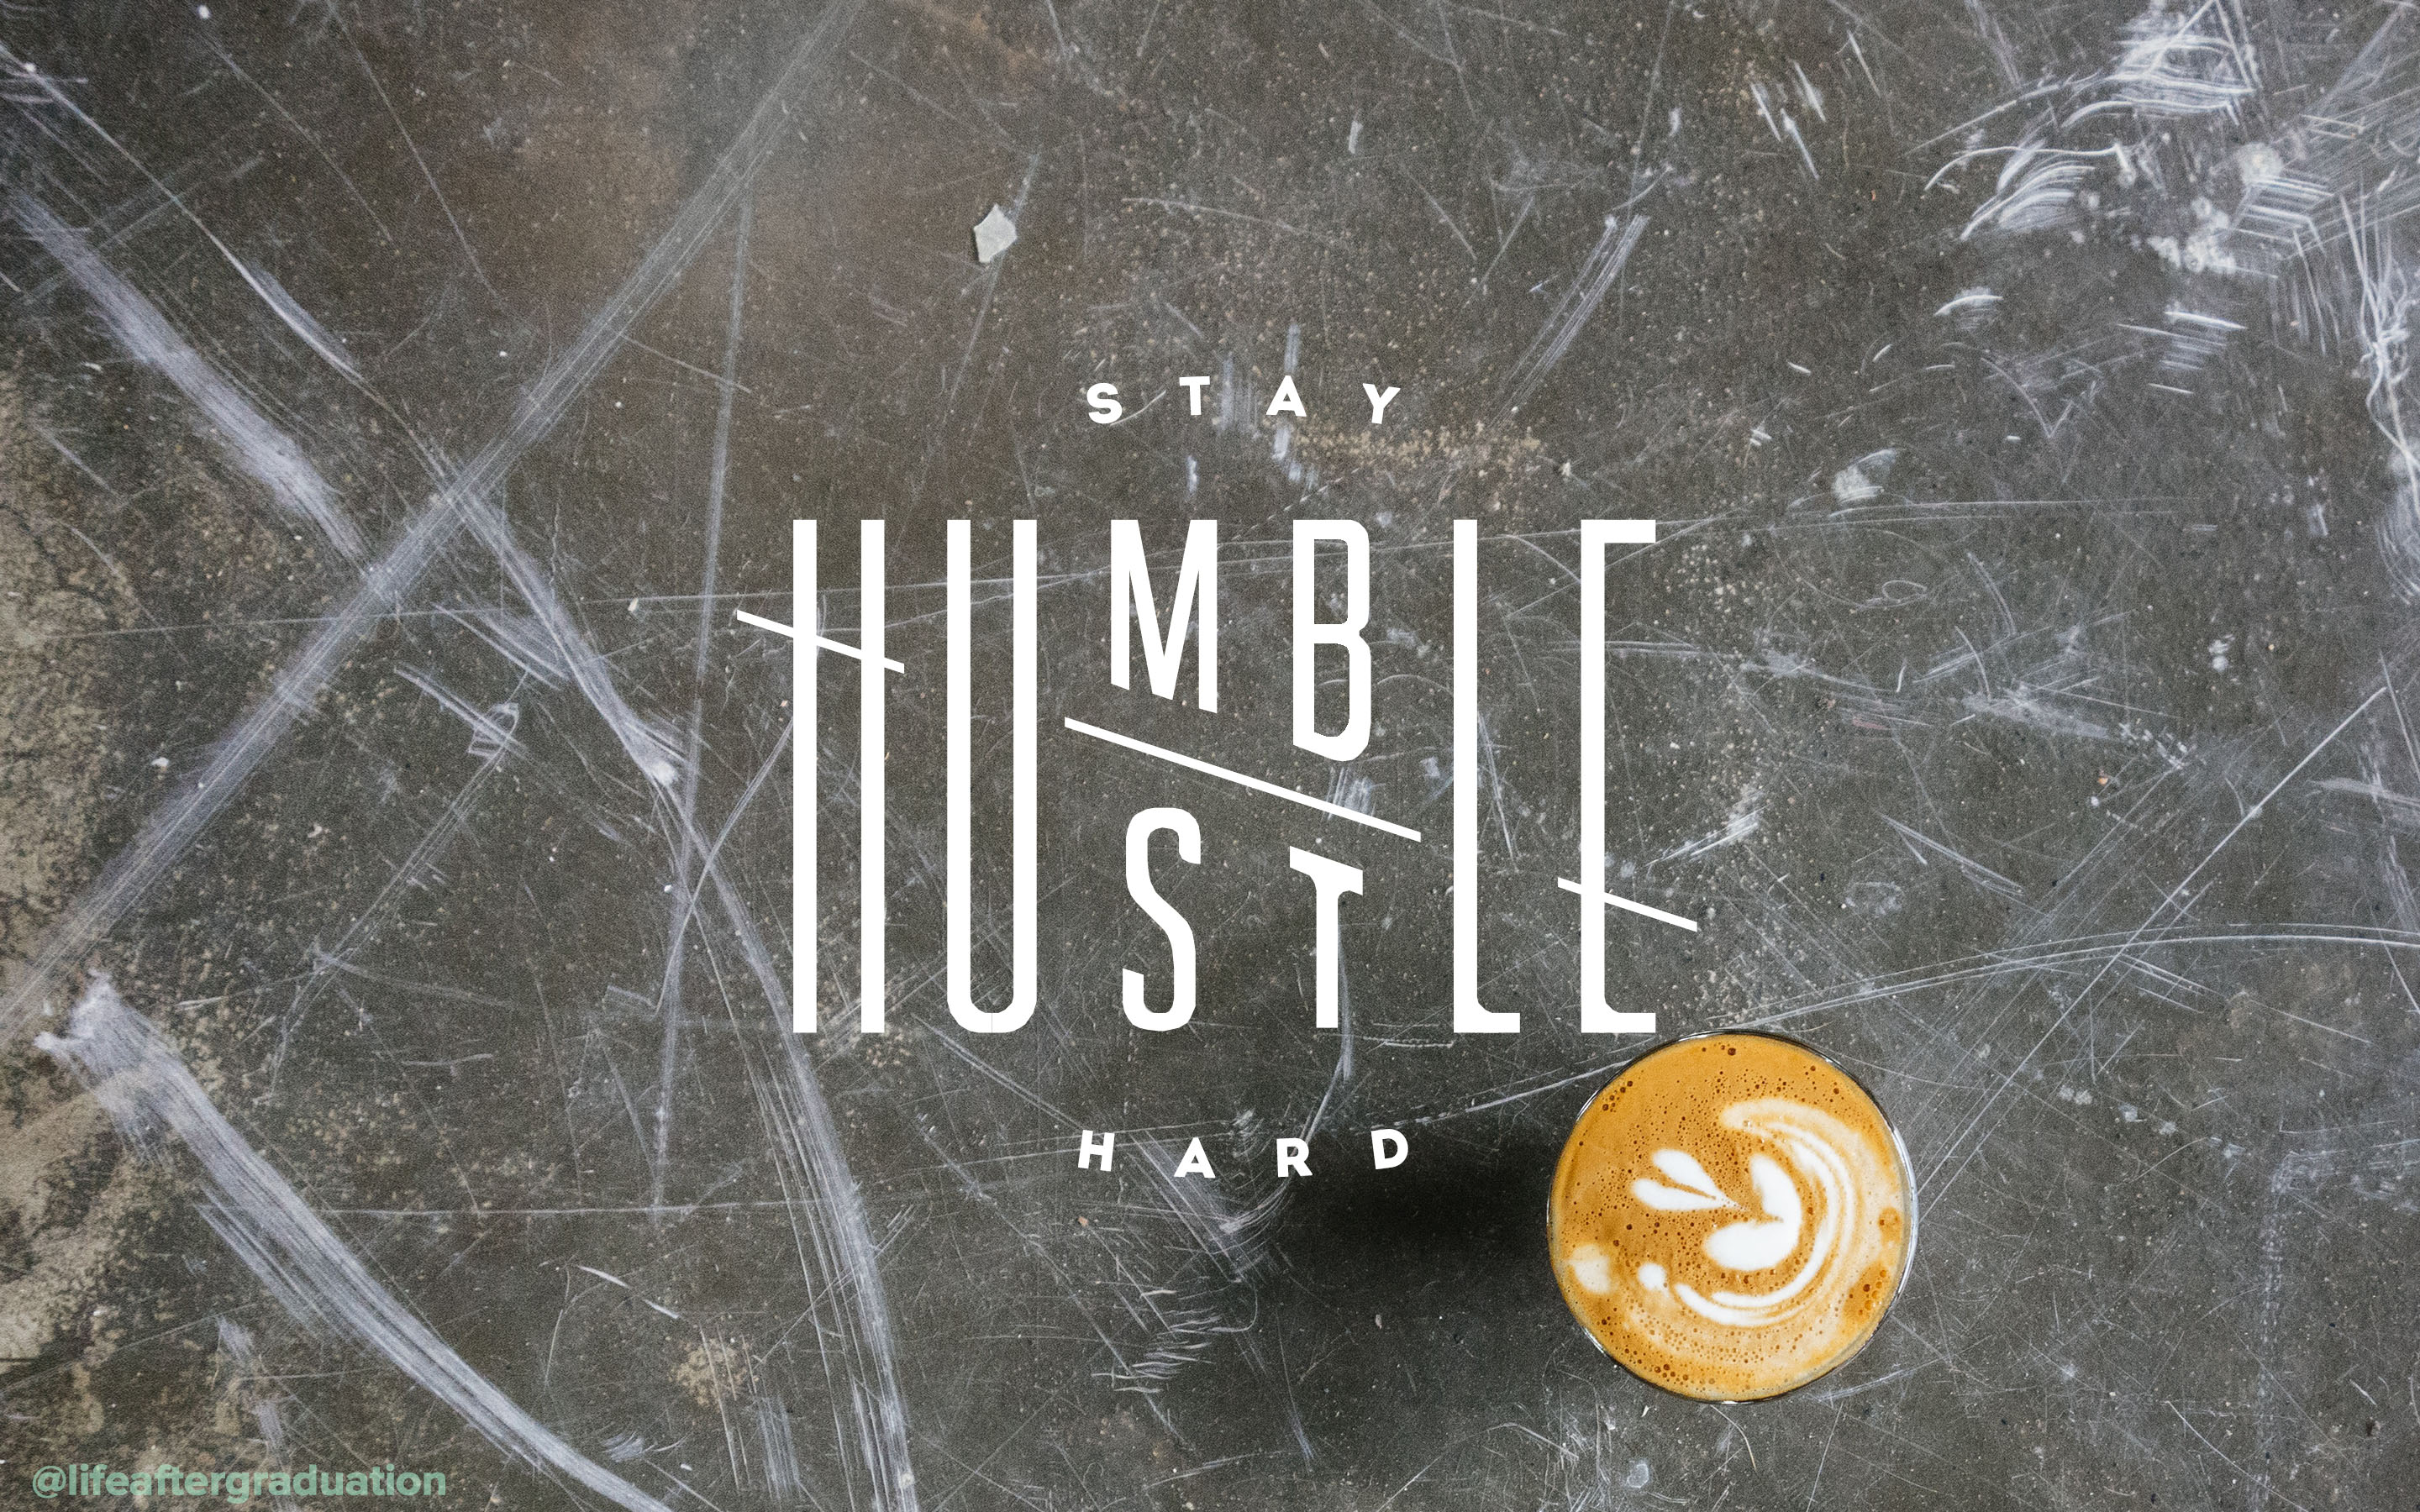 1000 images about laptop wallpapers on pinterest - Stay humble wallpaper ...